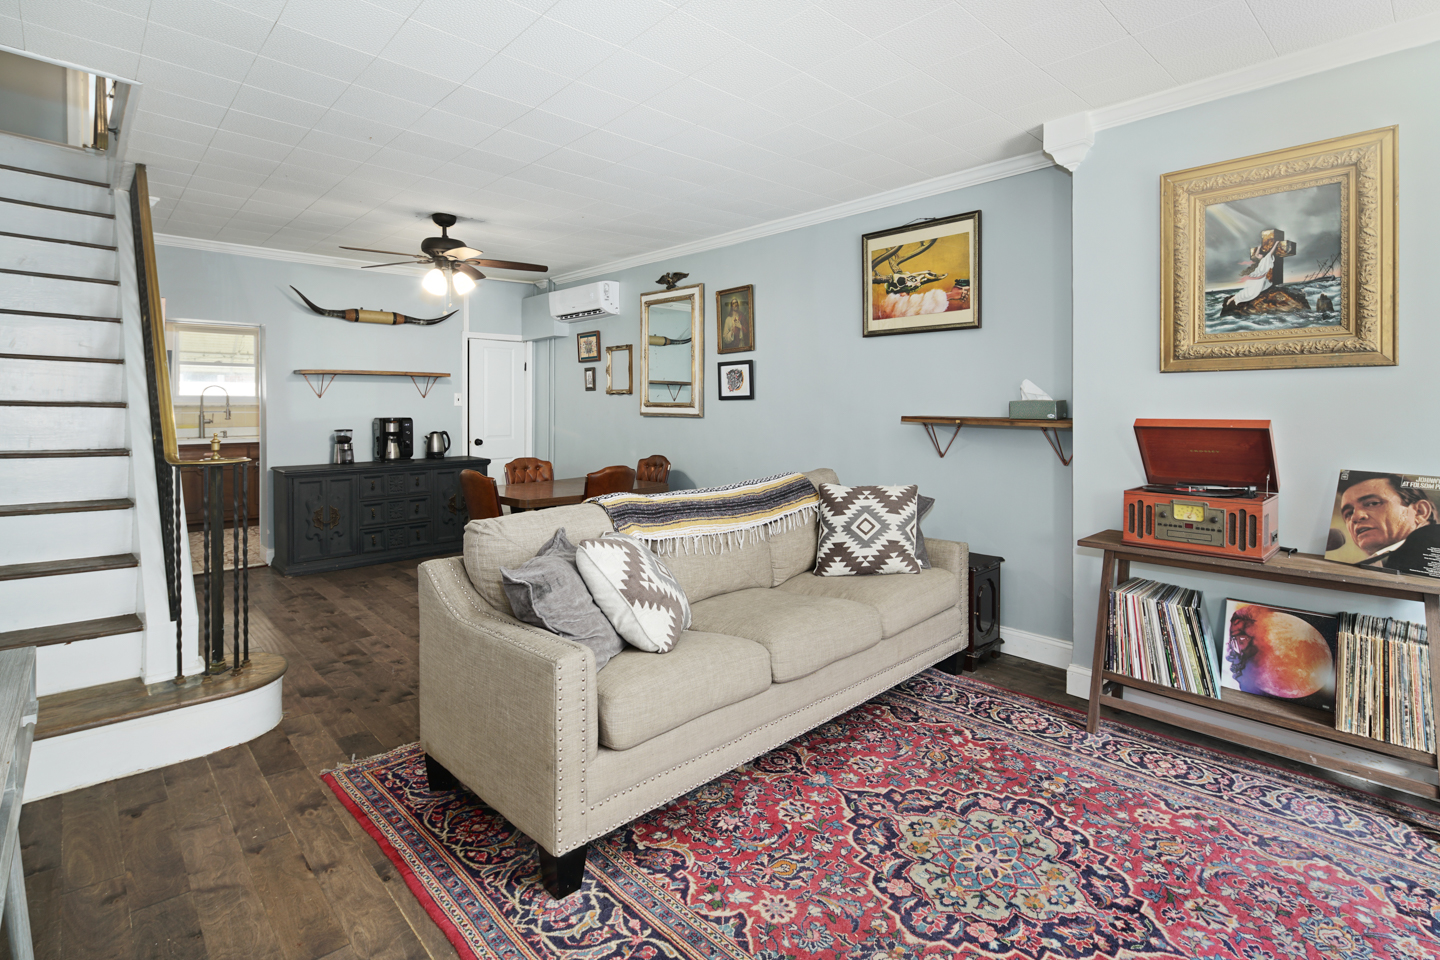 Rented | 2422 South Bancroft Street - Girard Estates, Philadelphia, PA, 19145